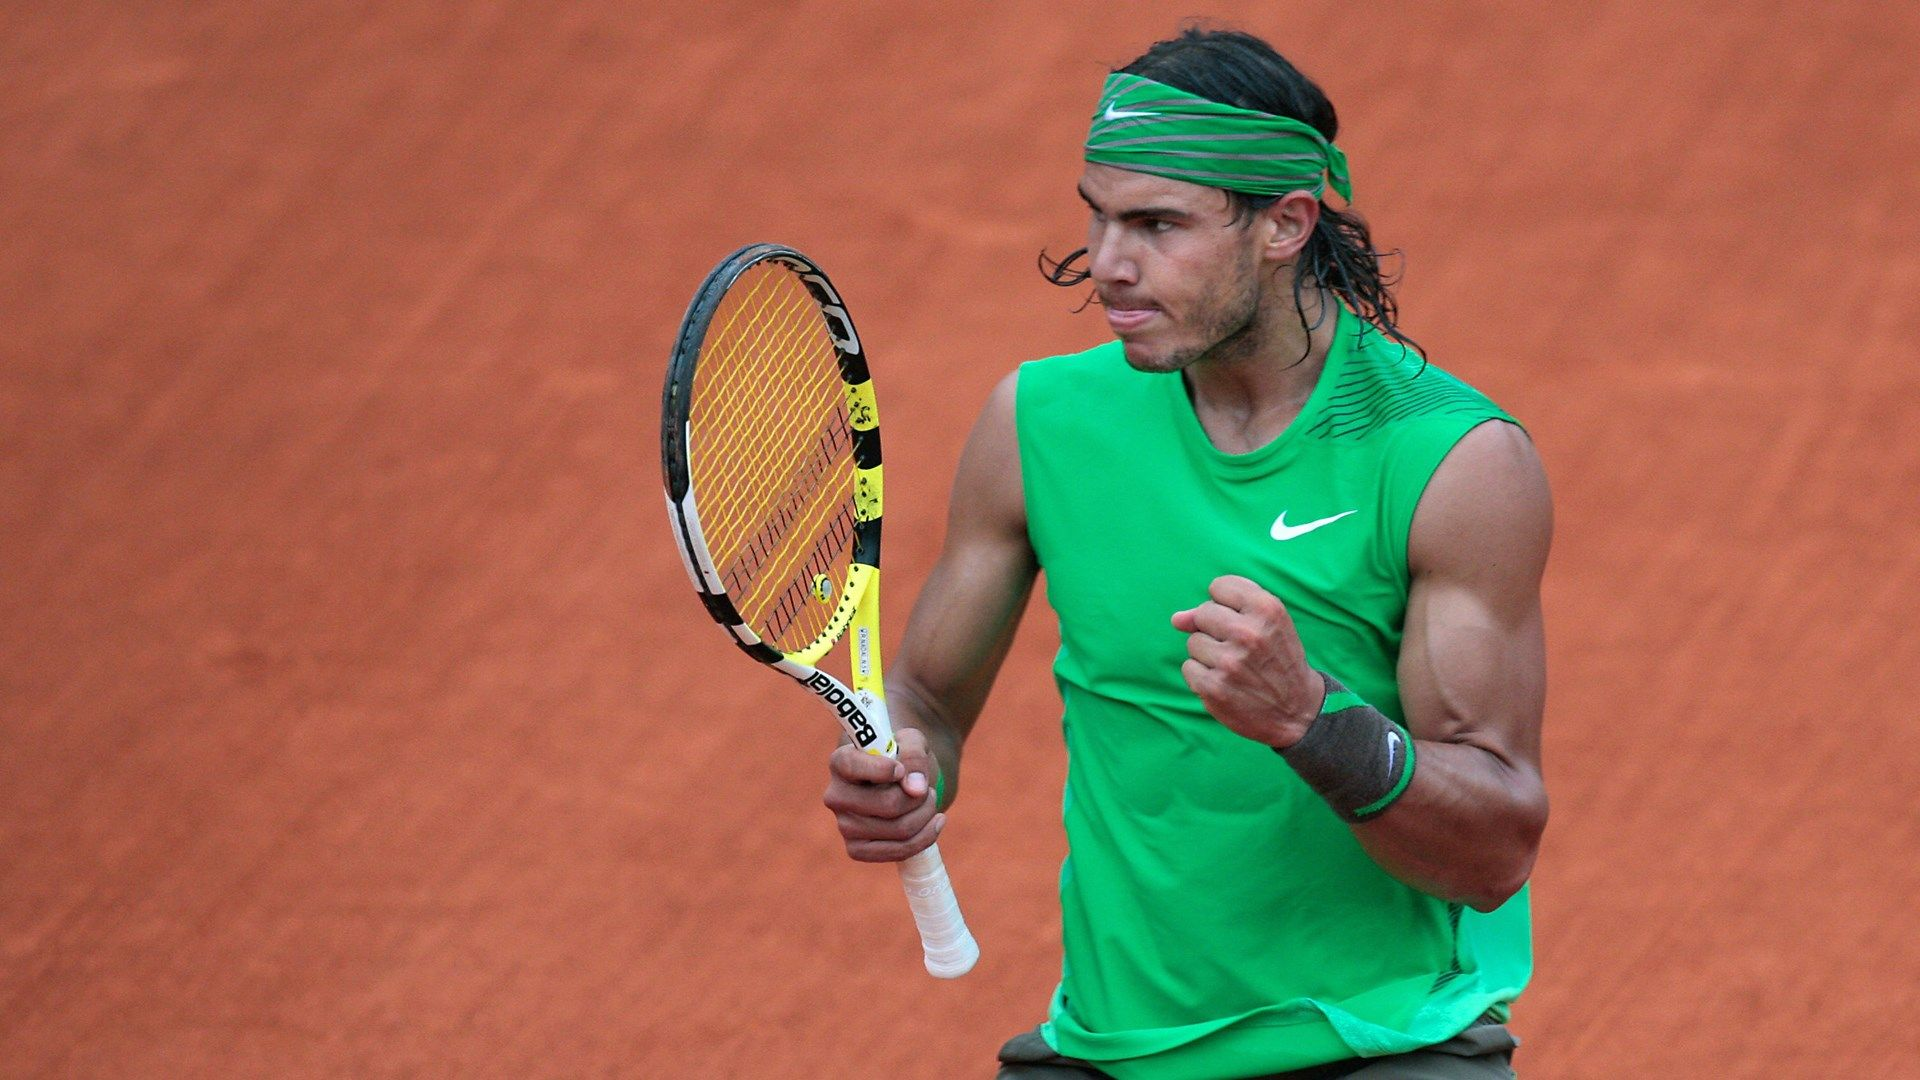 Amazing Image Hd Rafael Nadal In High Resolution Rafael Nadal Sports Wallpapers Image